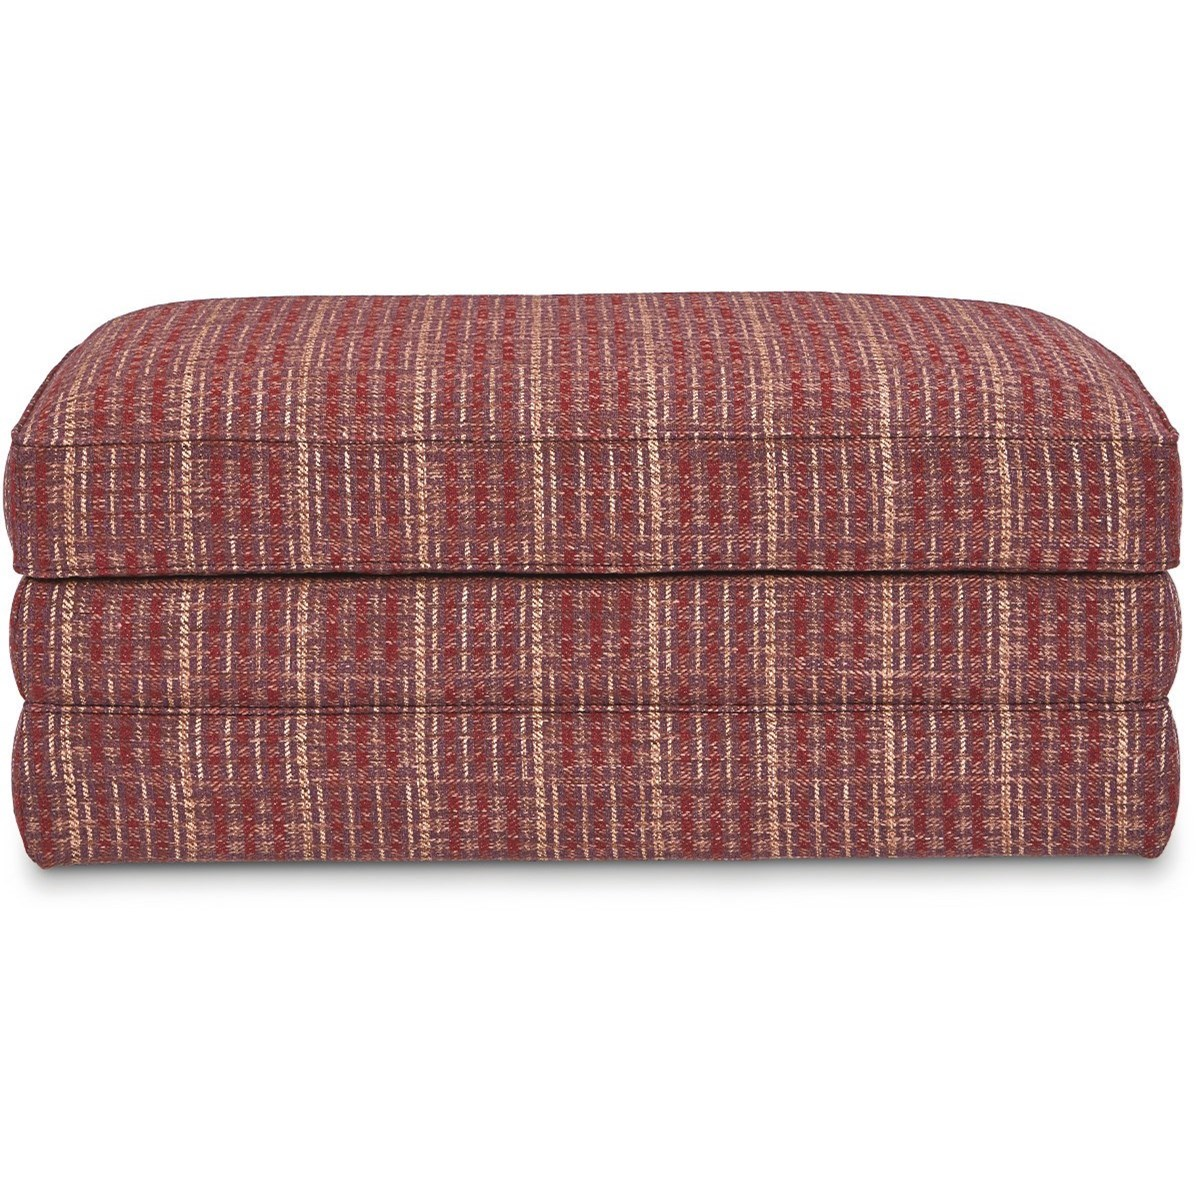 Ottomans  Corry Ottoman by La-Z-Boy at SuperStore